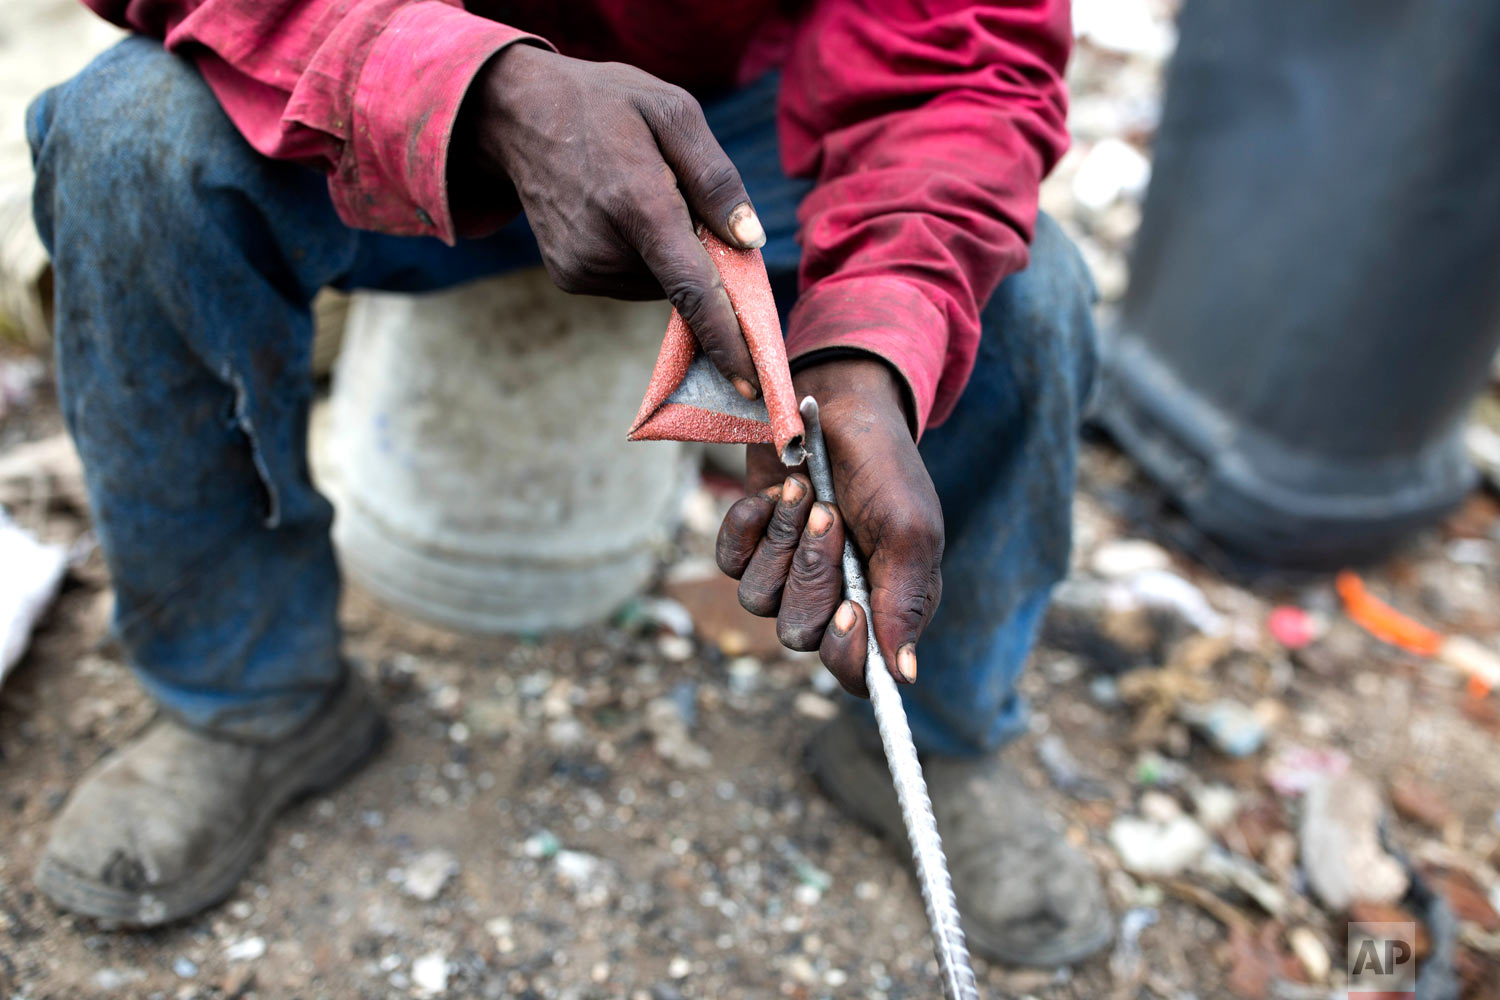 Changlair Aristide sharpens a metal rod he uses to pick through the rubble. Aug. 23, 2018. (AP Photo/Dieu Nalio Chery)